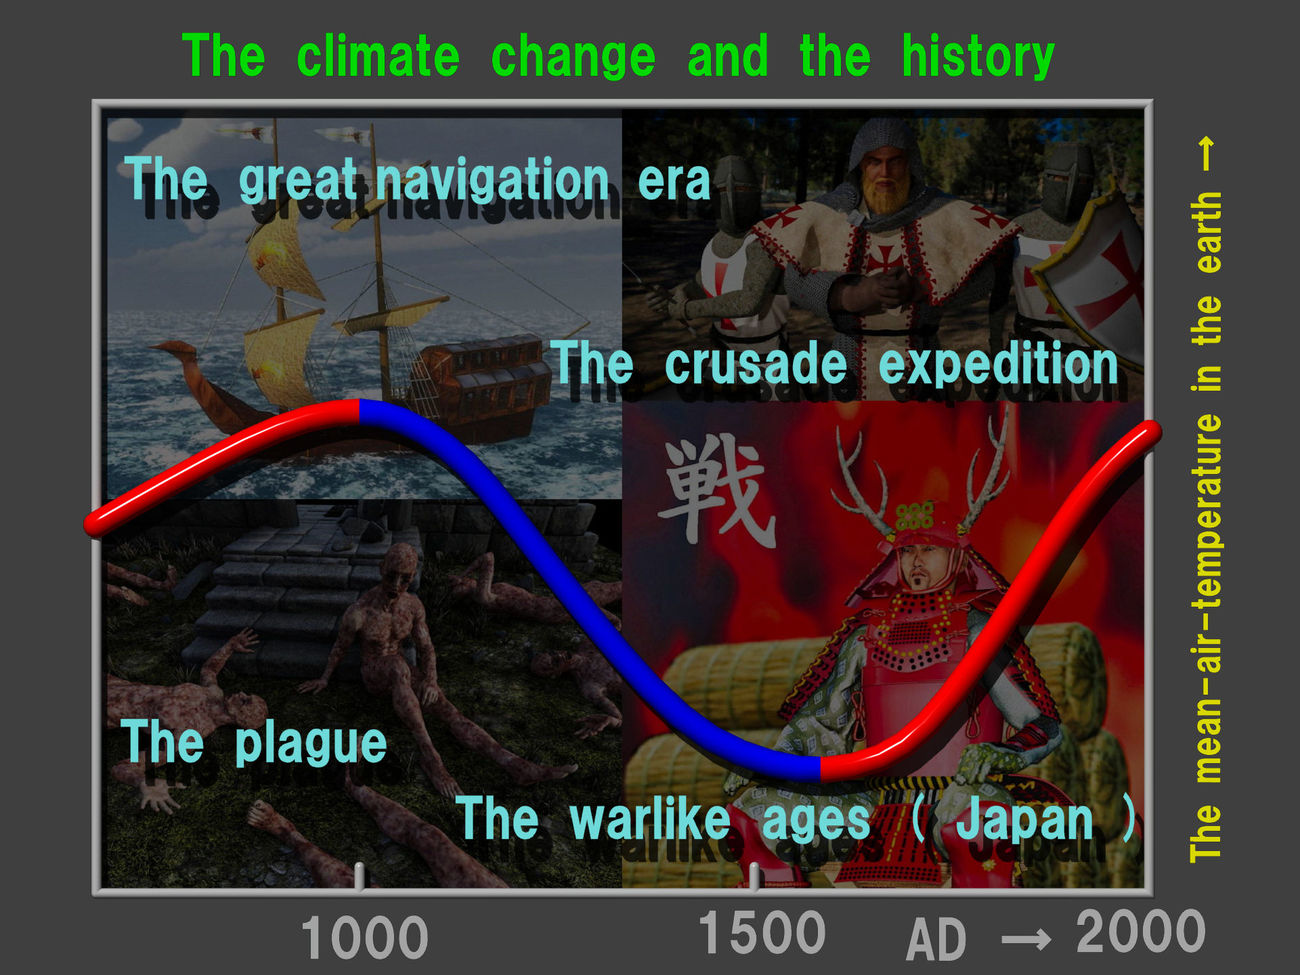 The climate change and the history